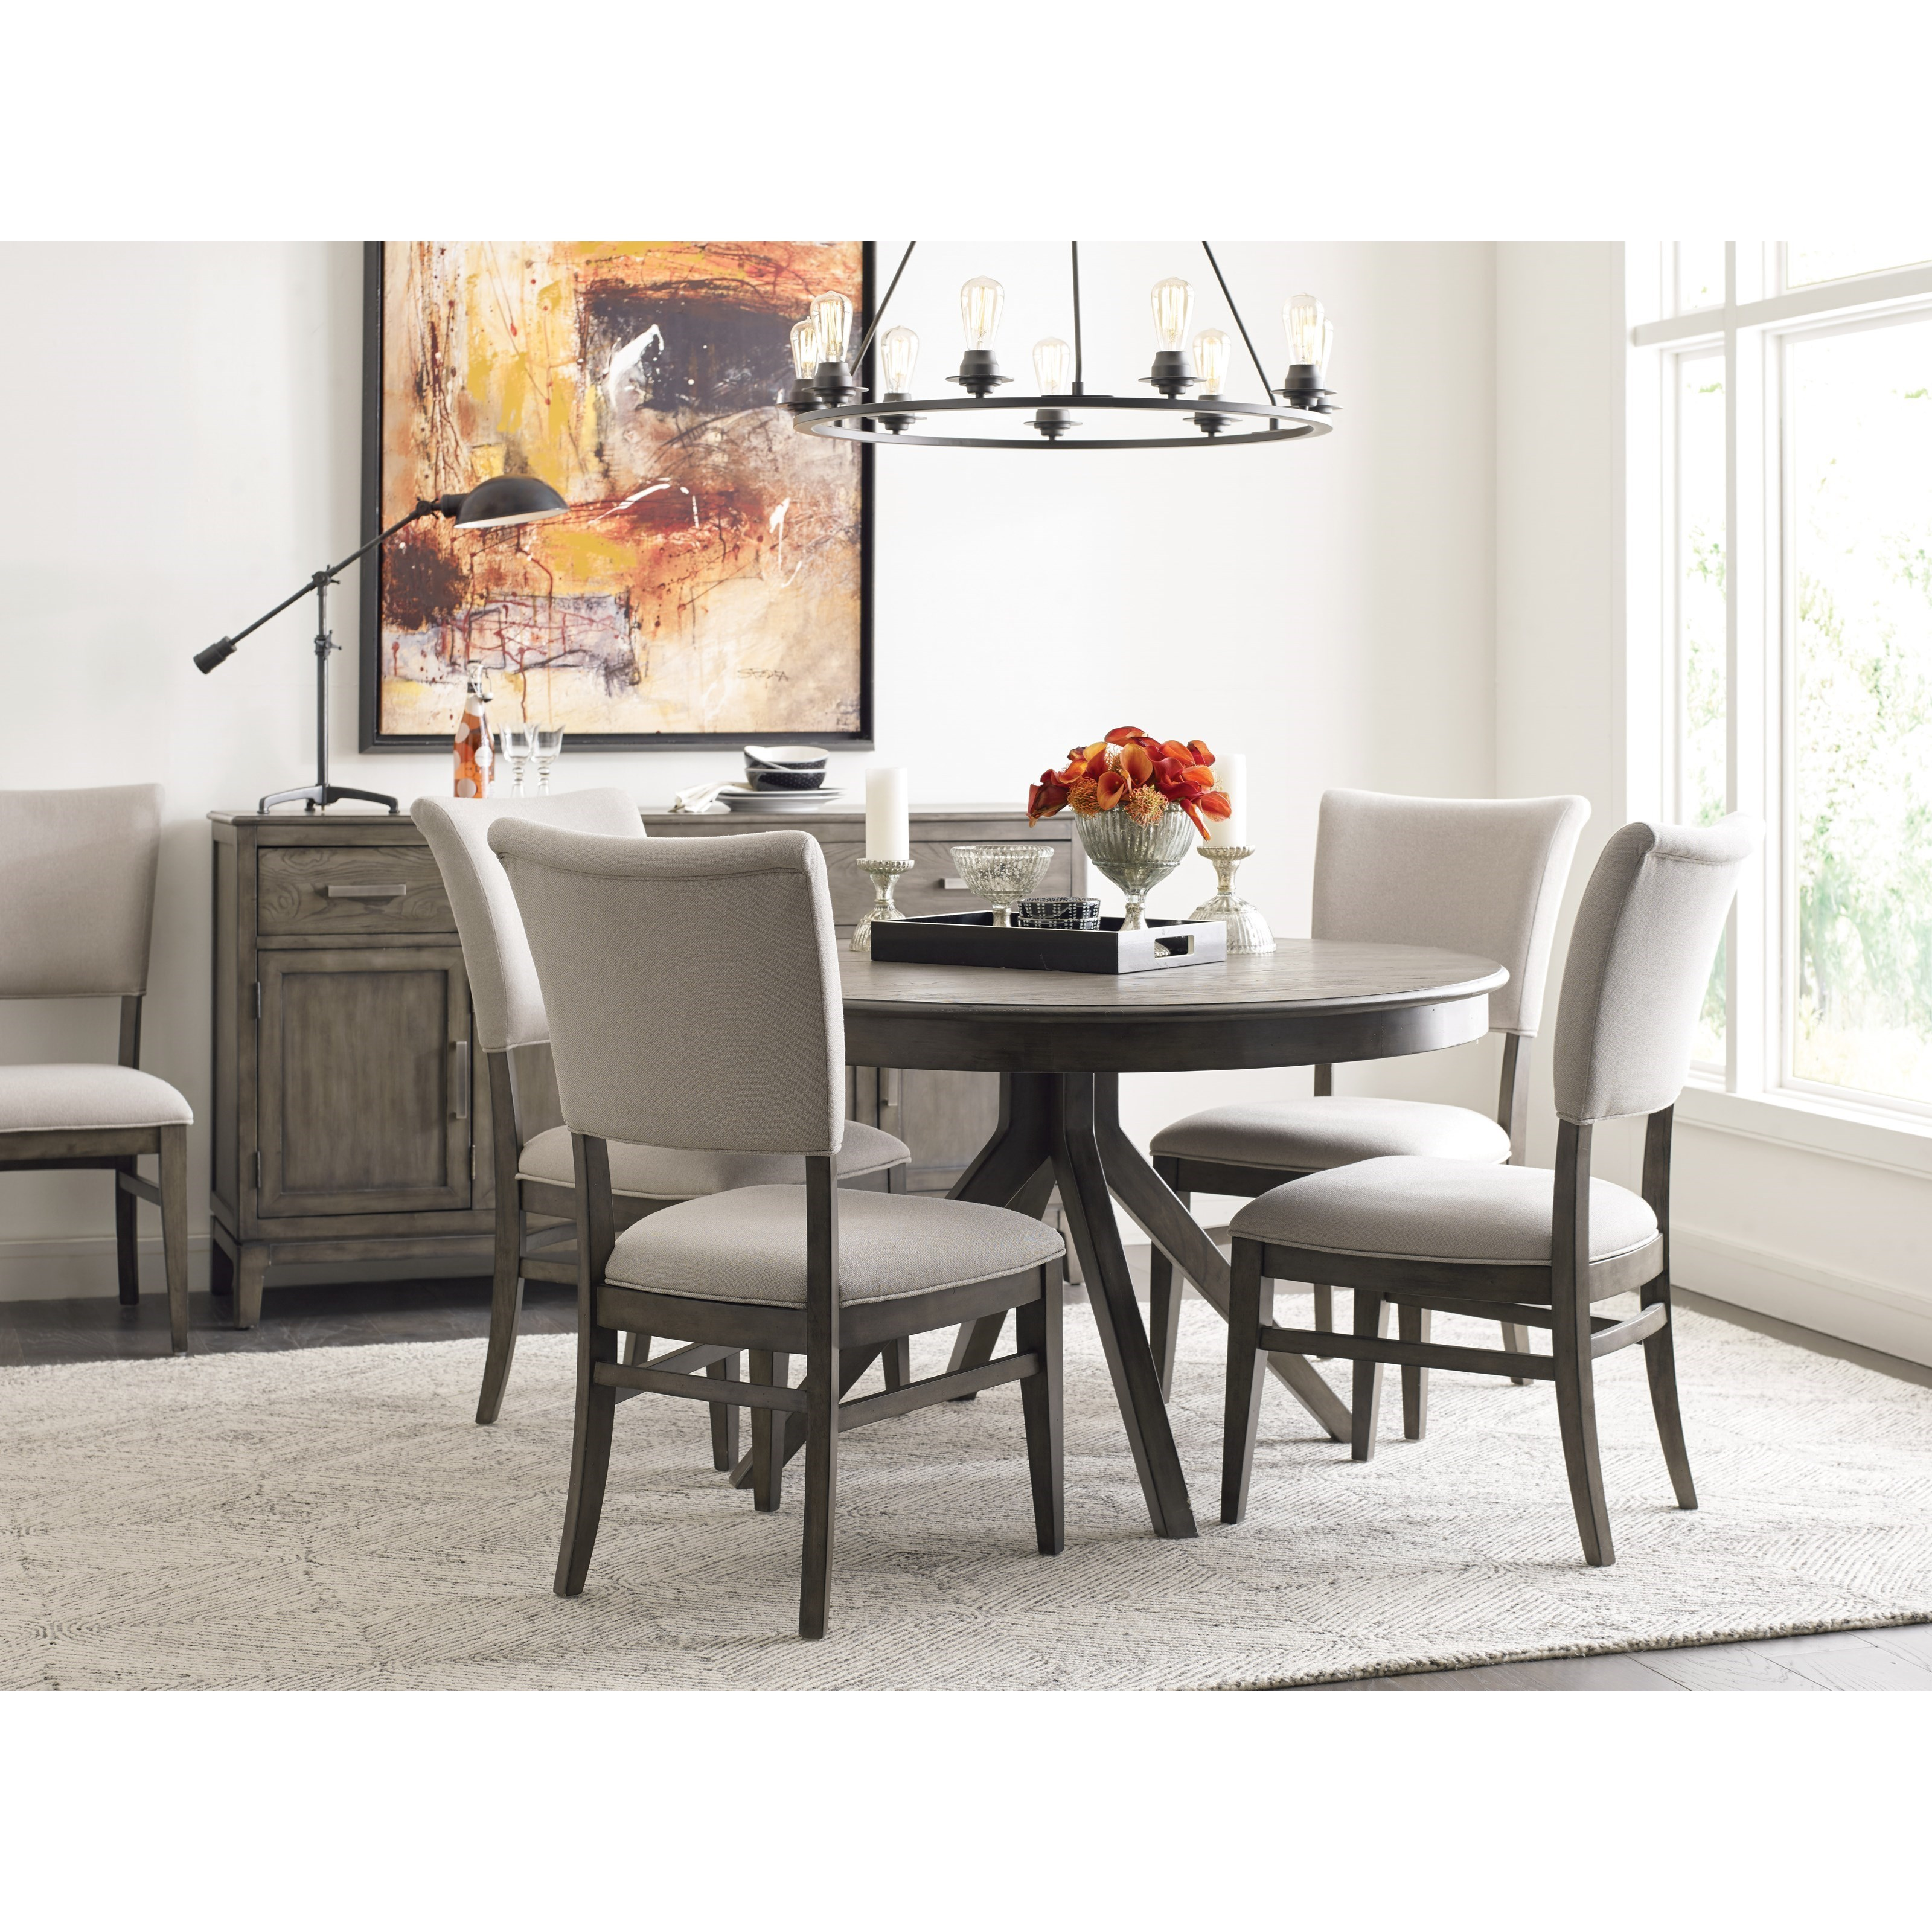 Cascade Casual Dining Room Group by Kincaid Furniture at Johnny Janosik